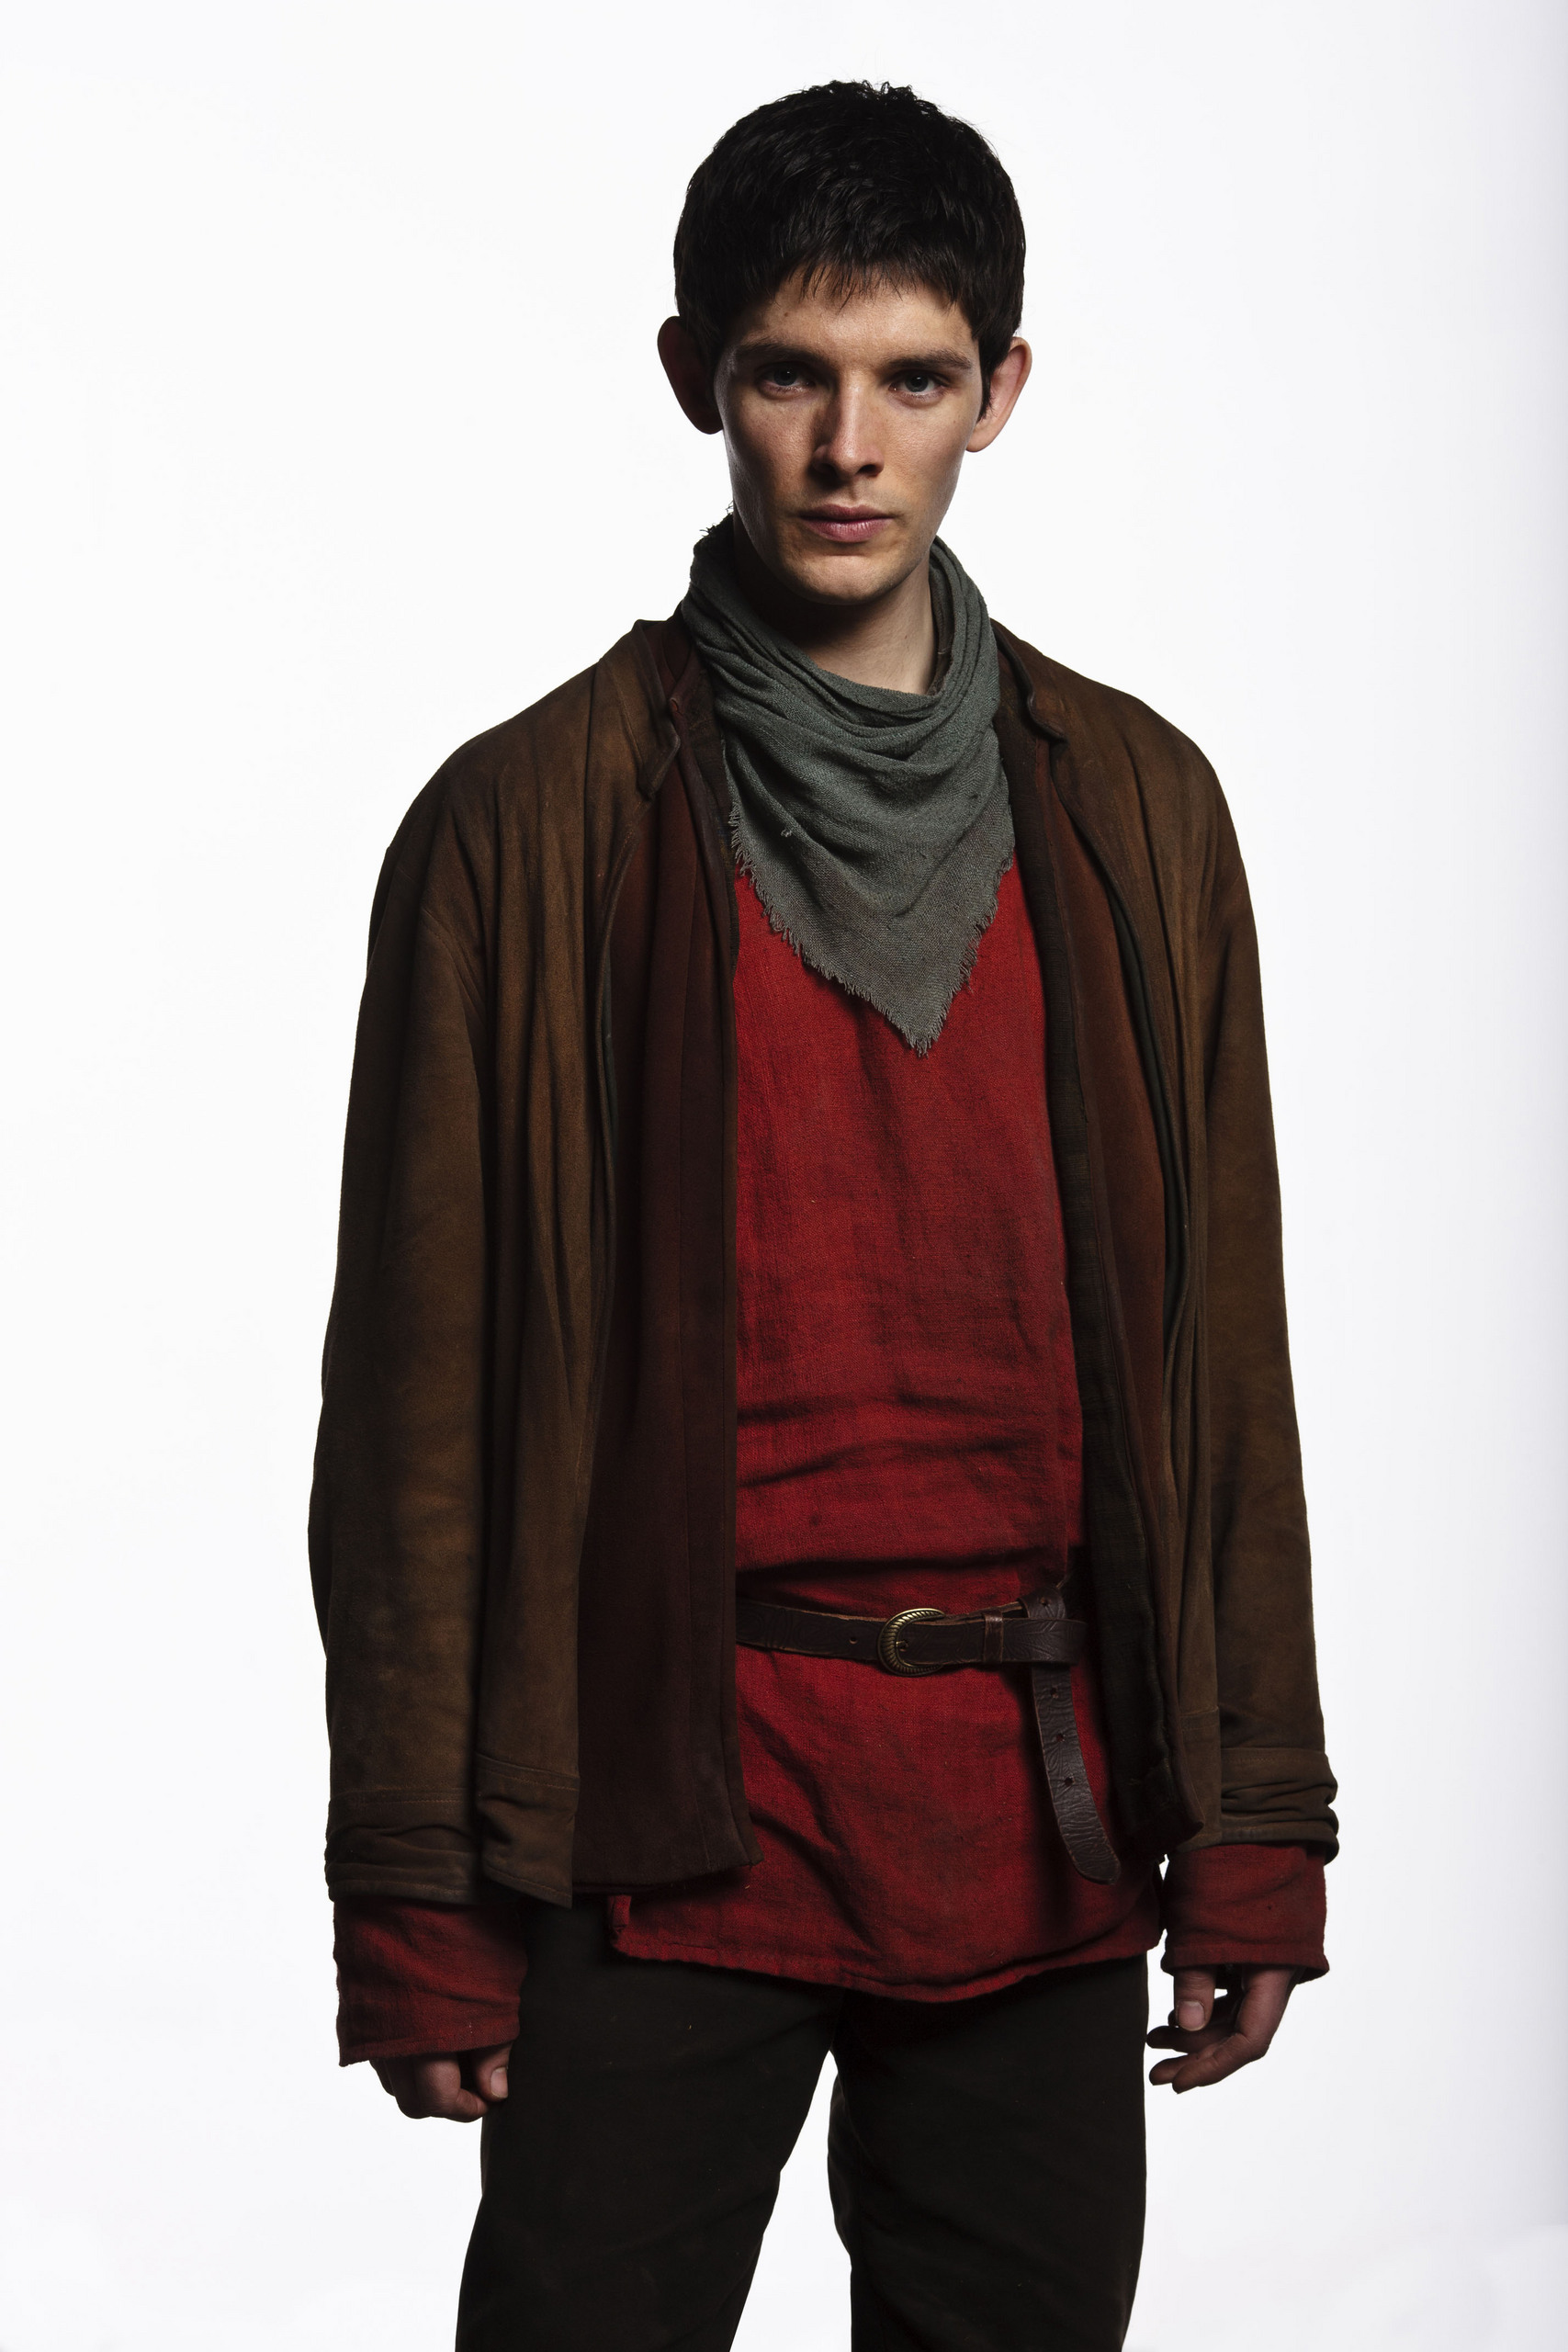 Merlin on BBC images S...